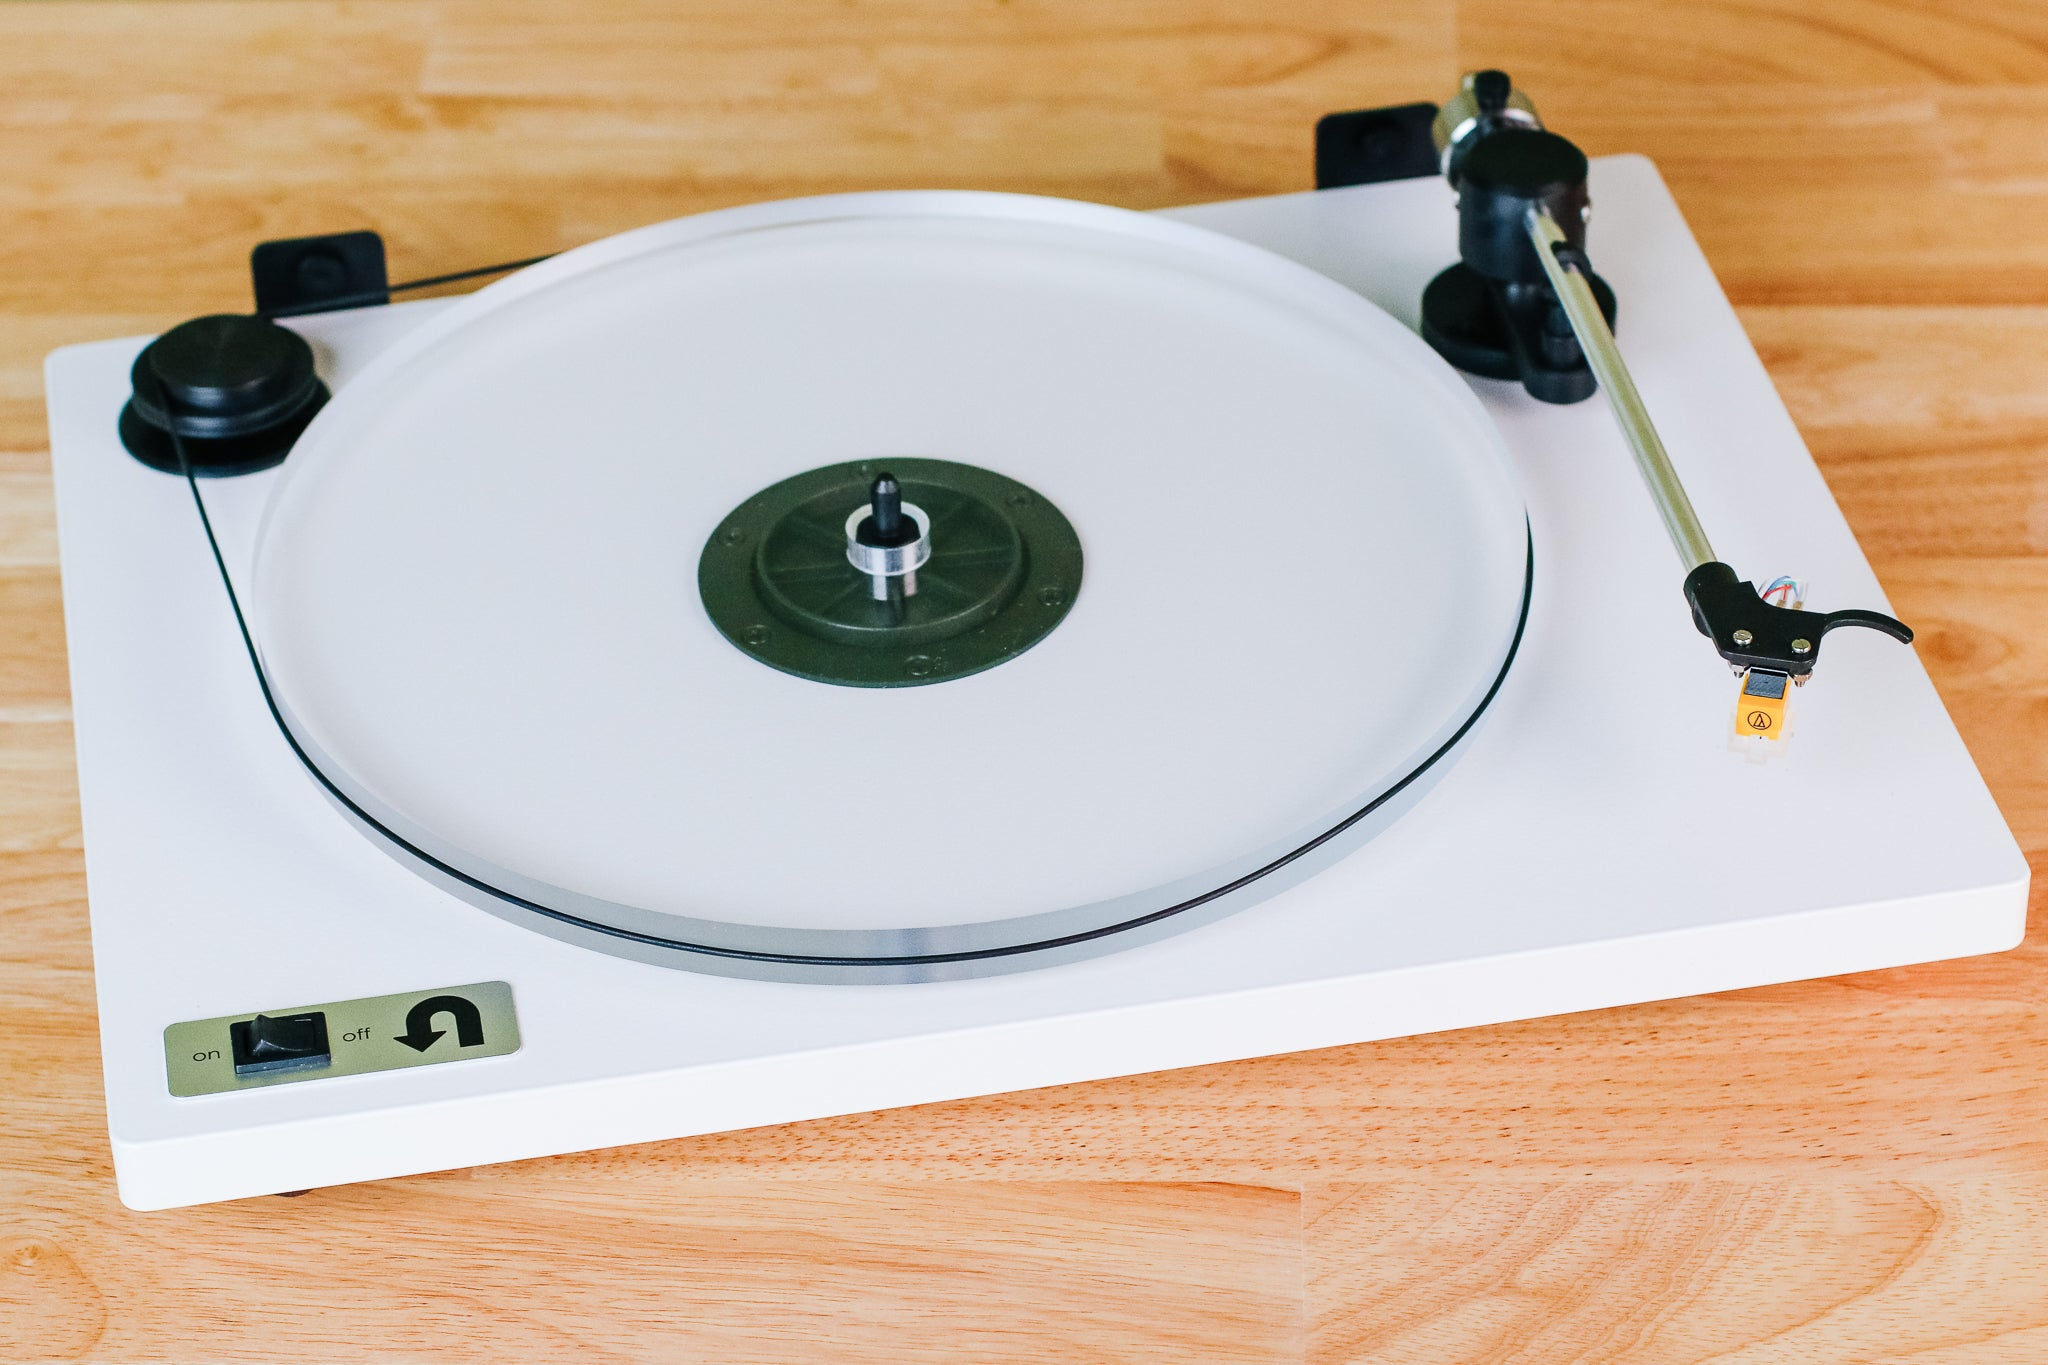 The U-Turn Orbit Basic record player, shown on a wooden surface.